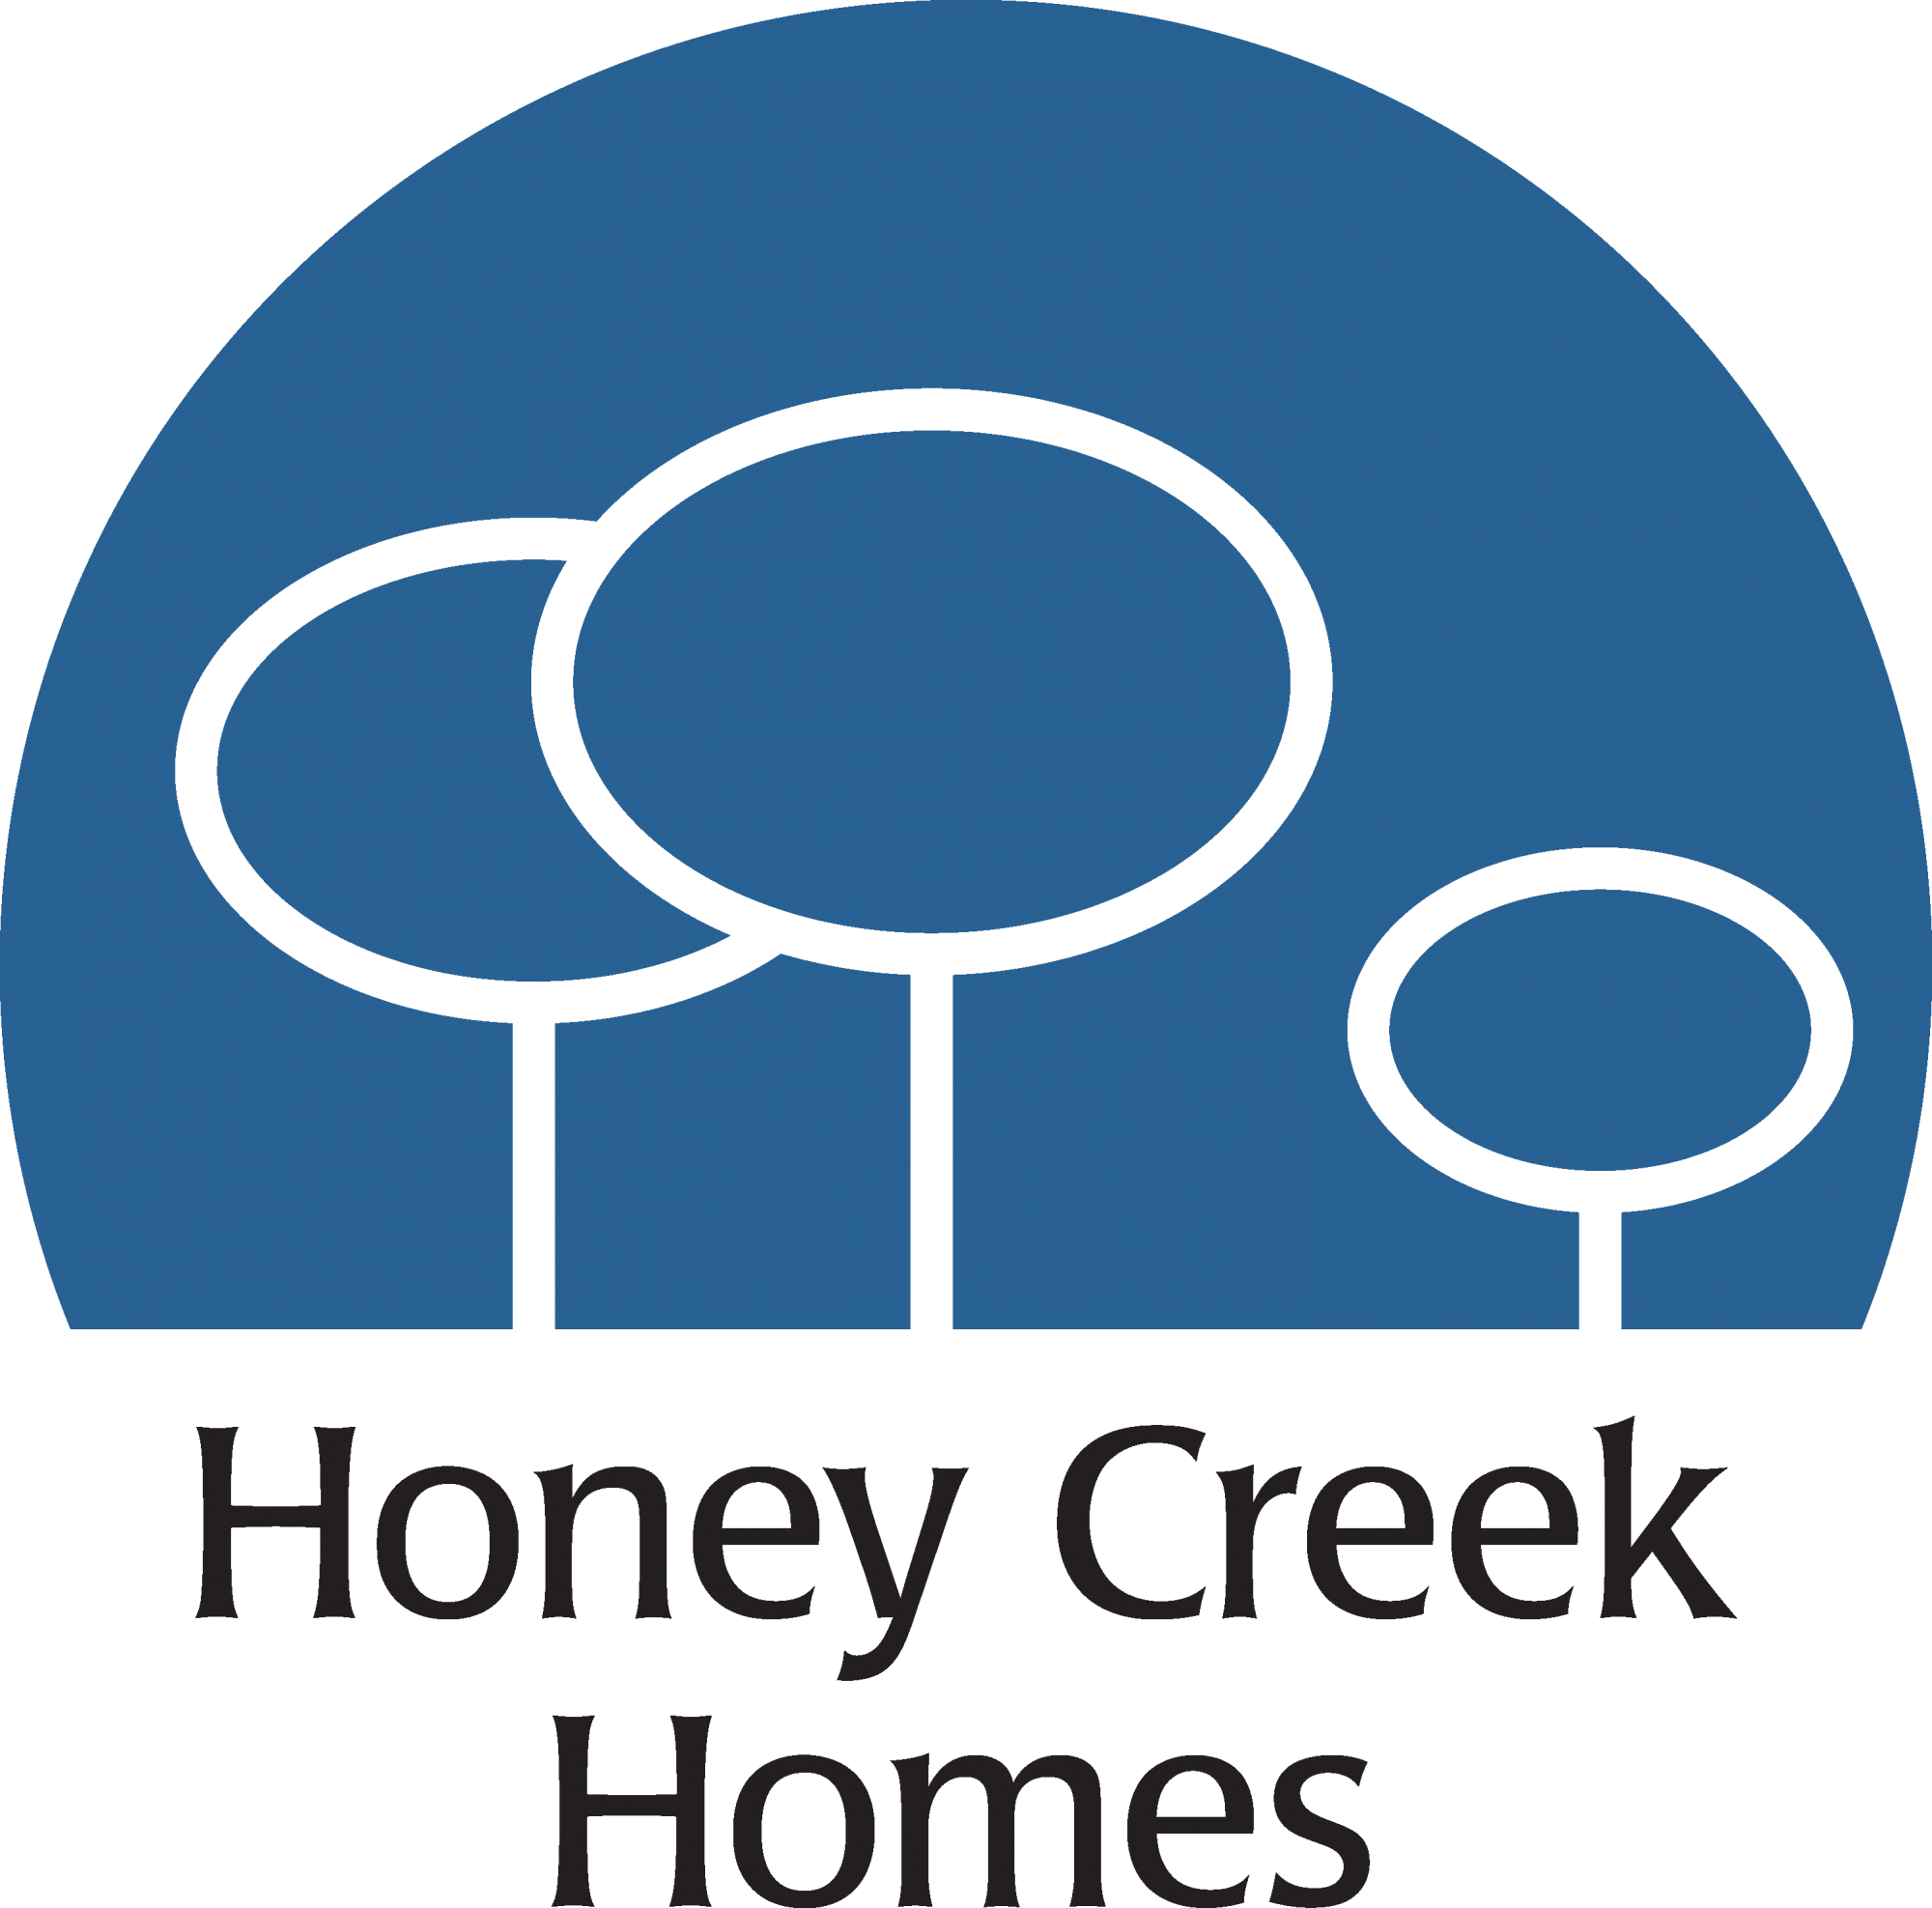 Honey Creek Homes